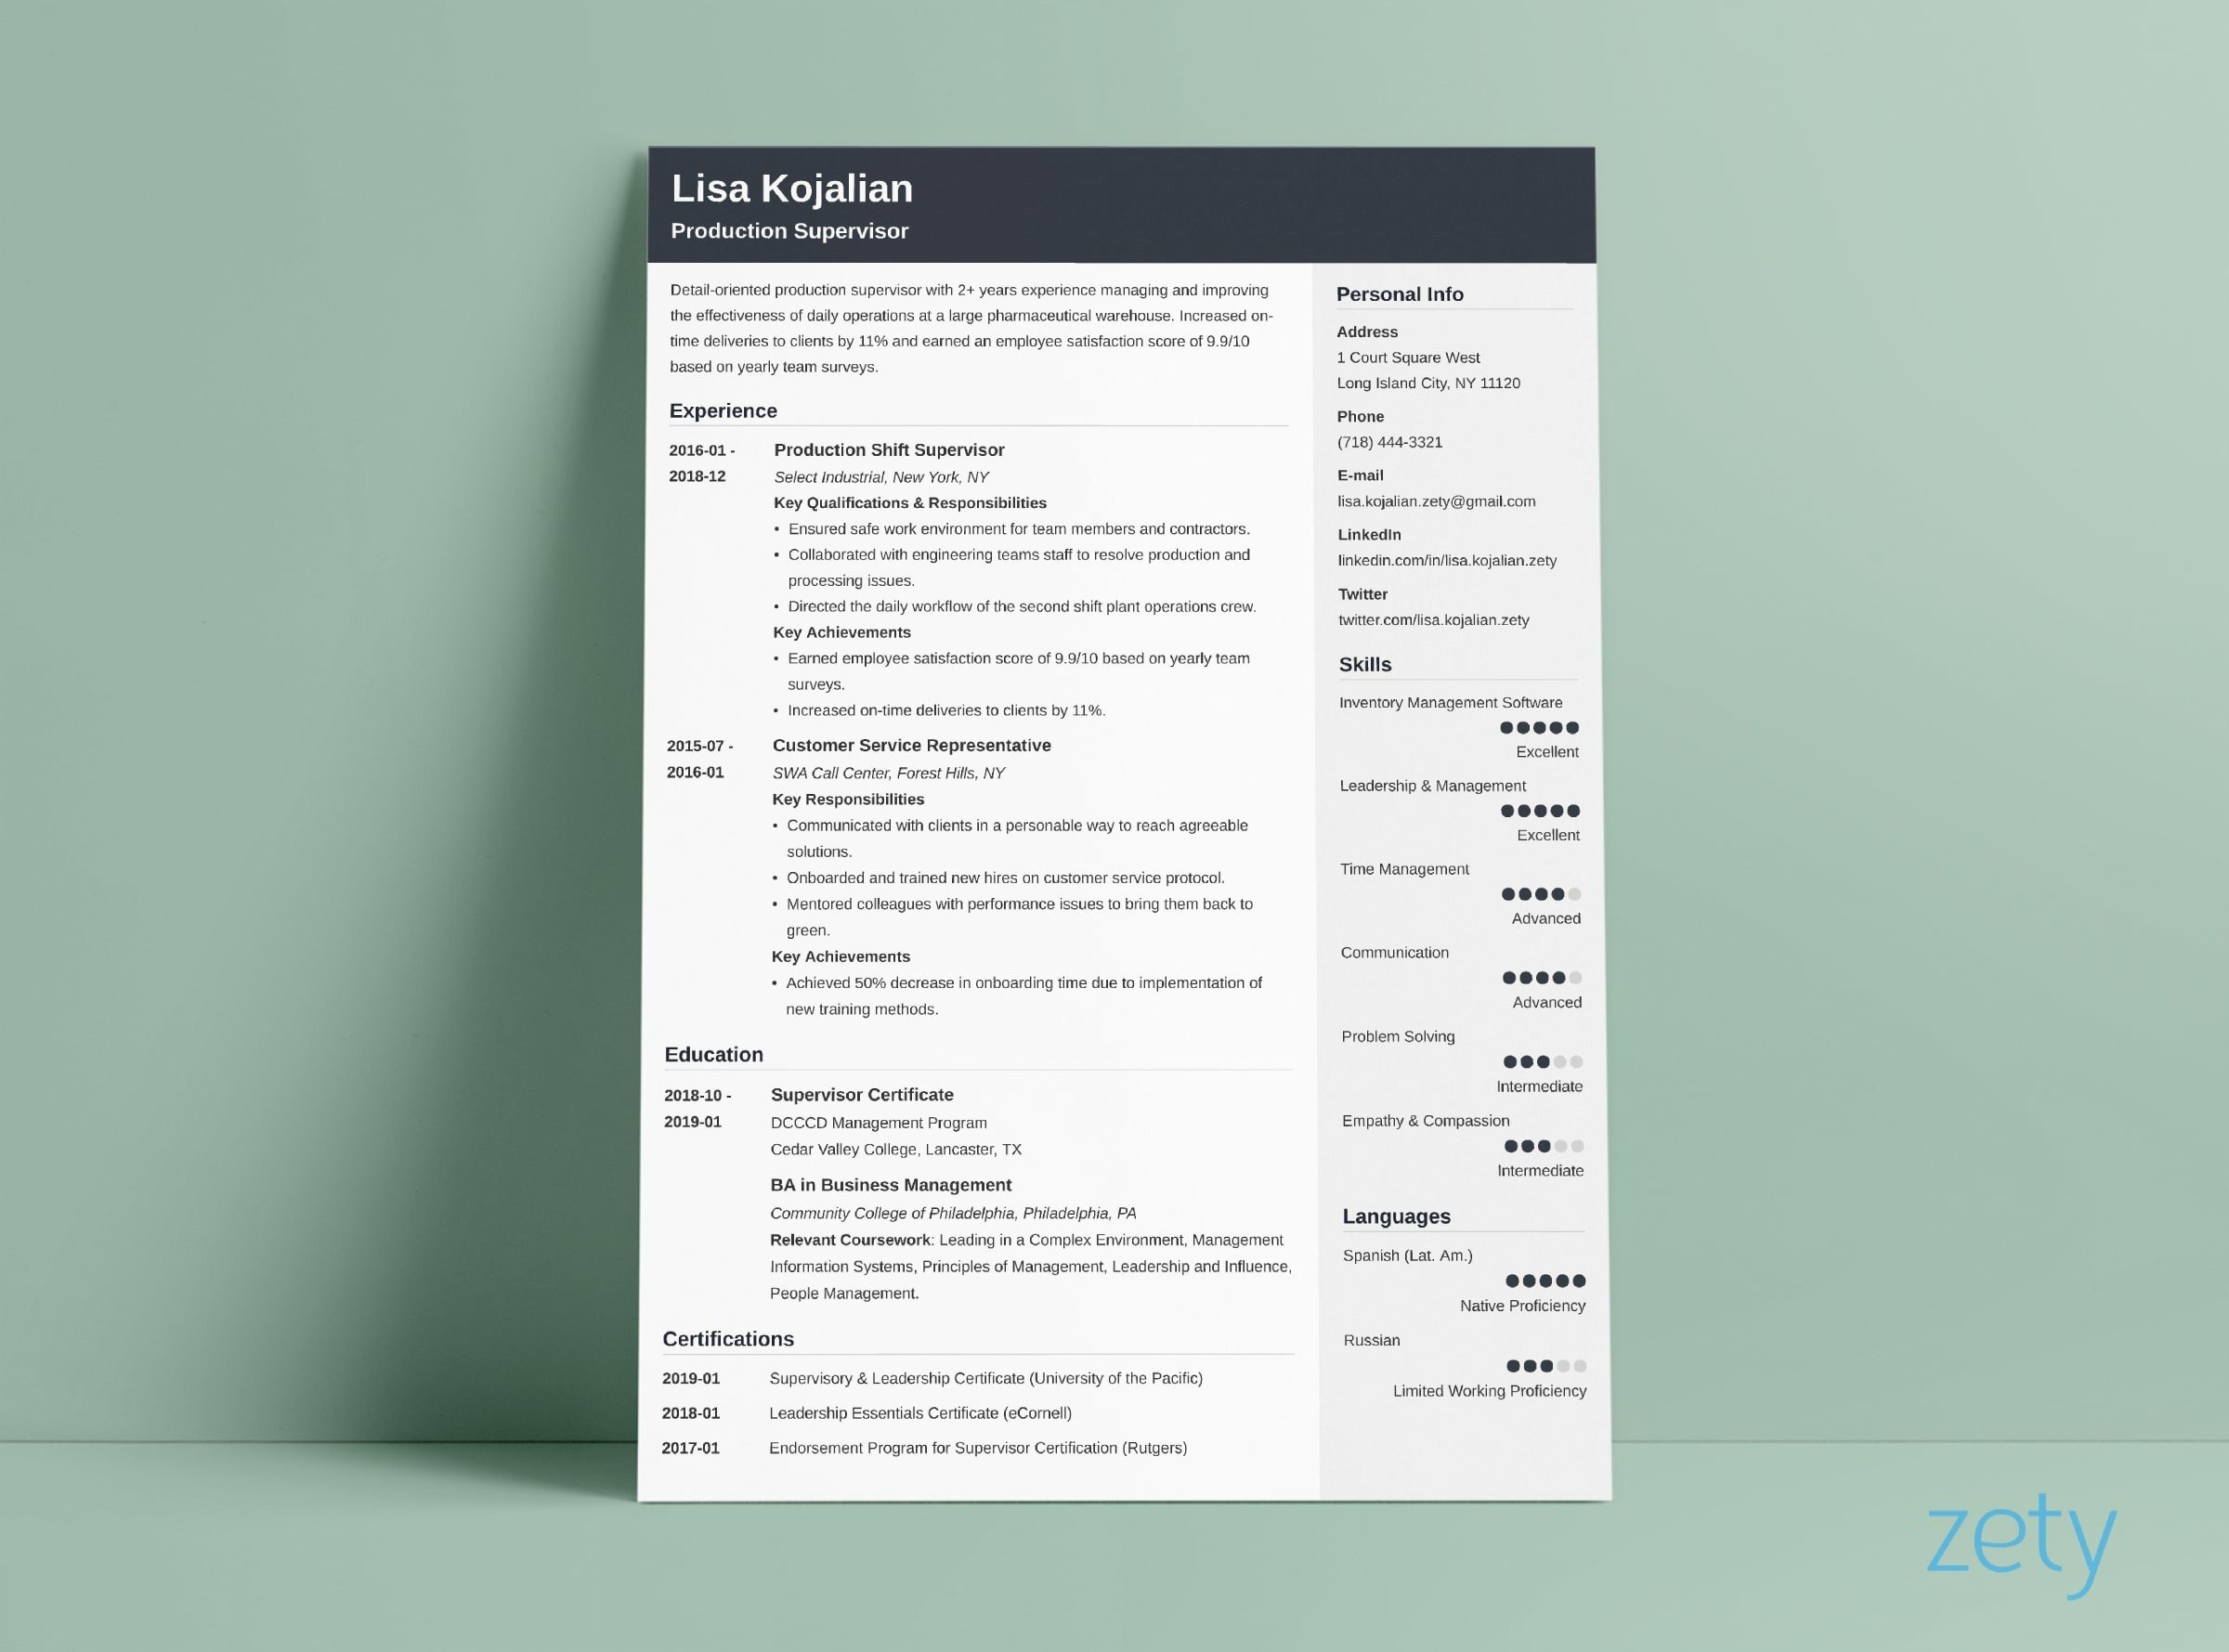 student resume cv templates to now zety template cubic employment and career readiness Resume Zety Resume Template Download